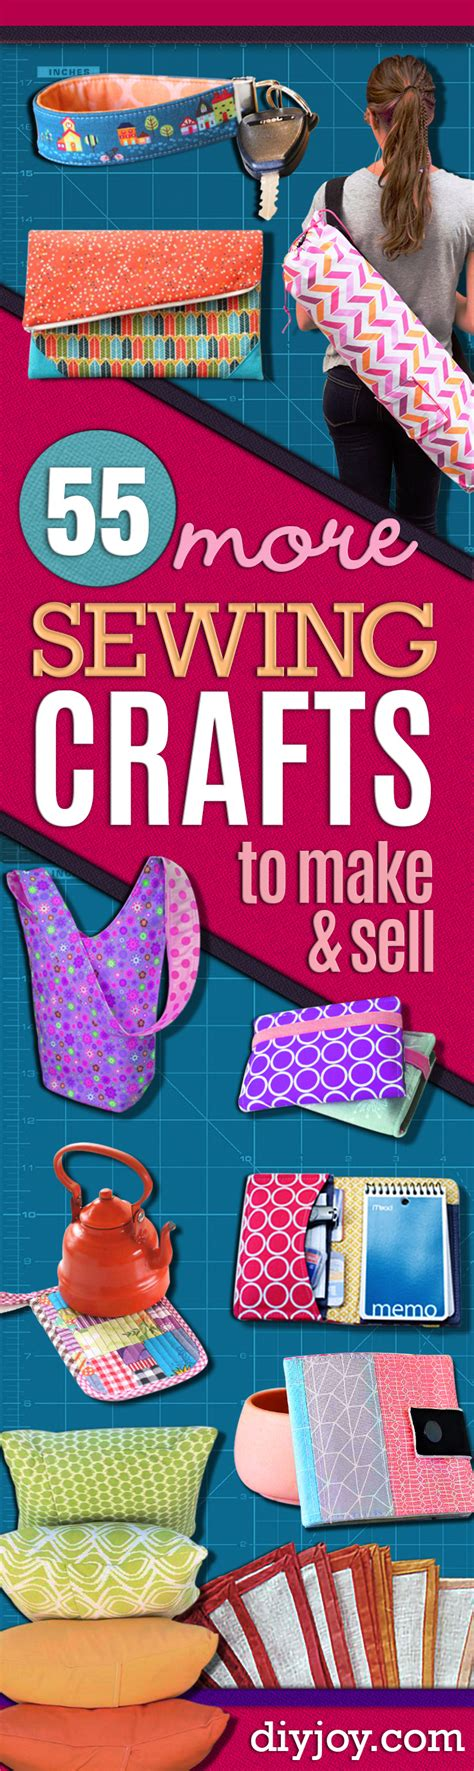 ideas to sell for 55 more sewing crafts to make and sell page 3 of 11